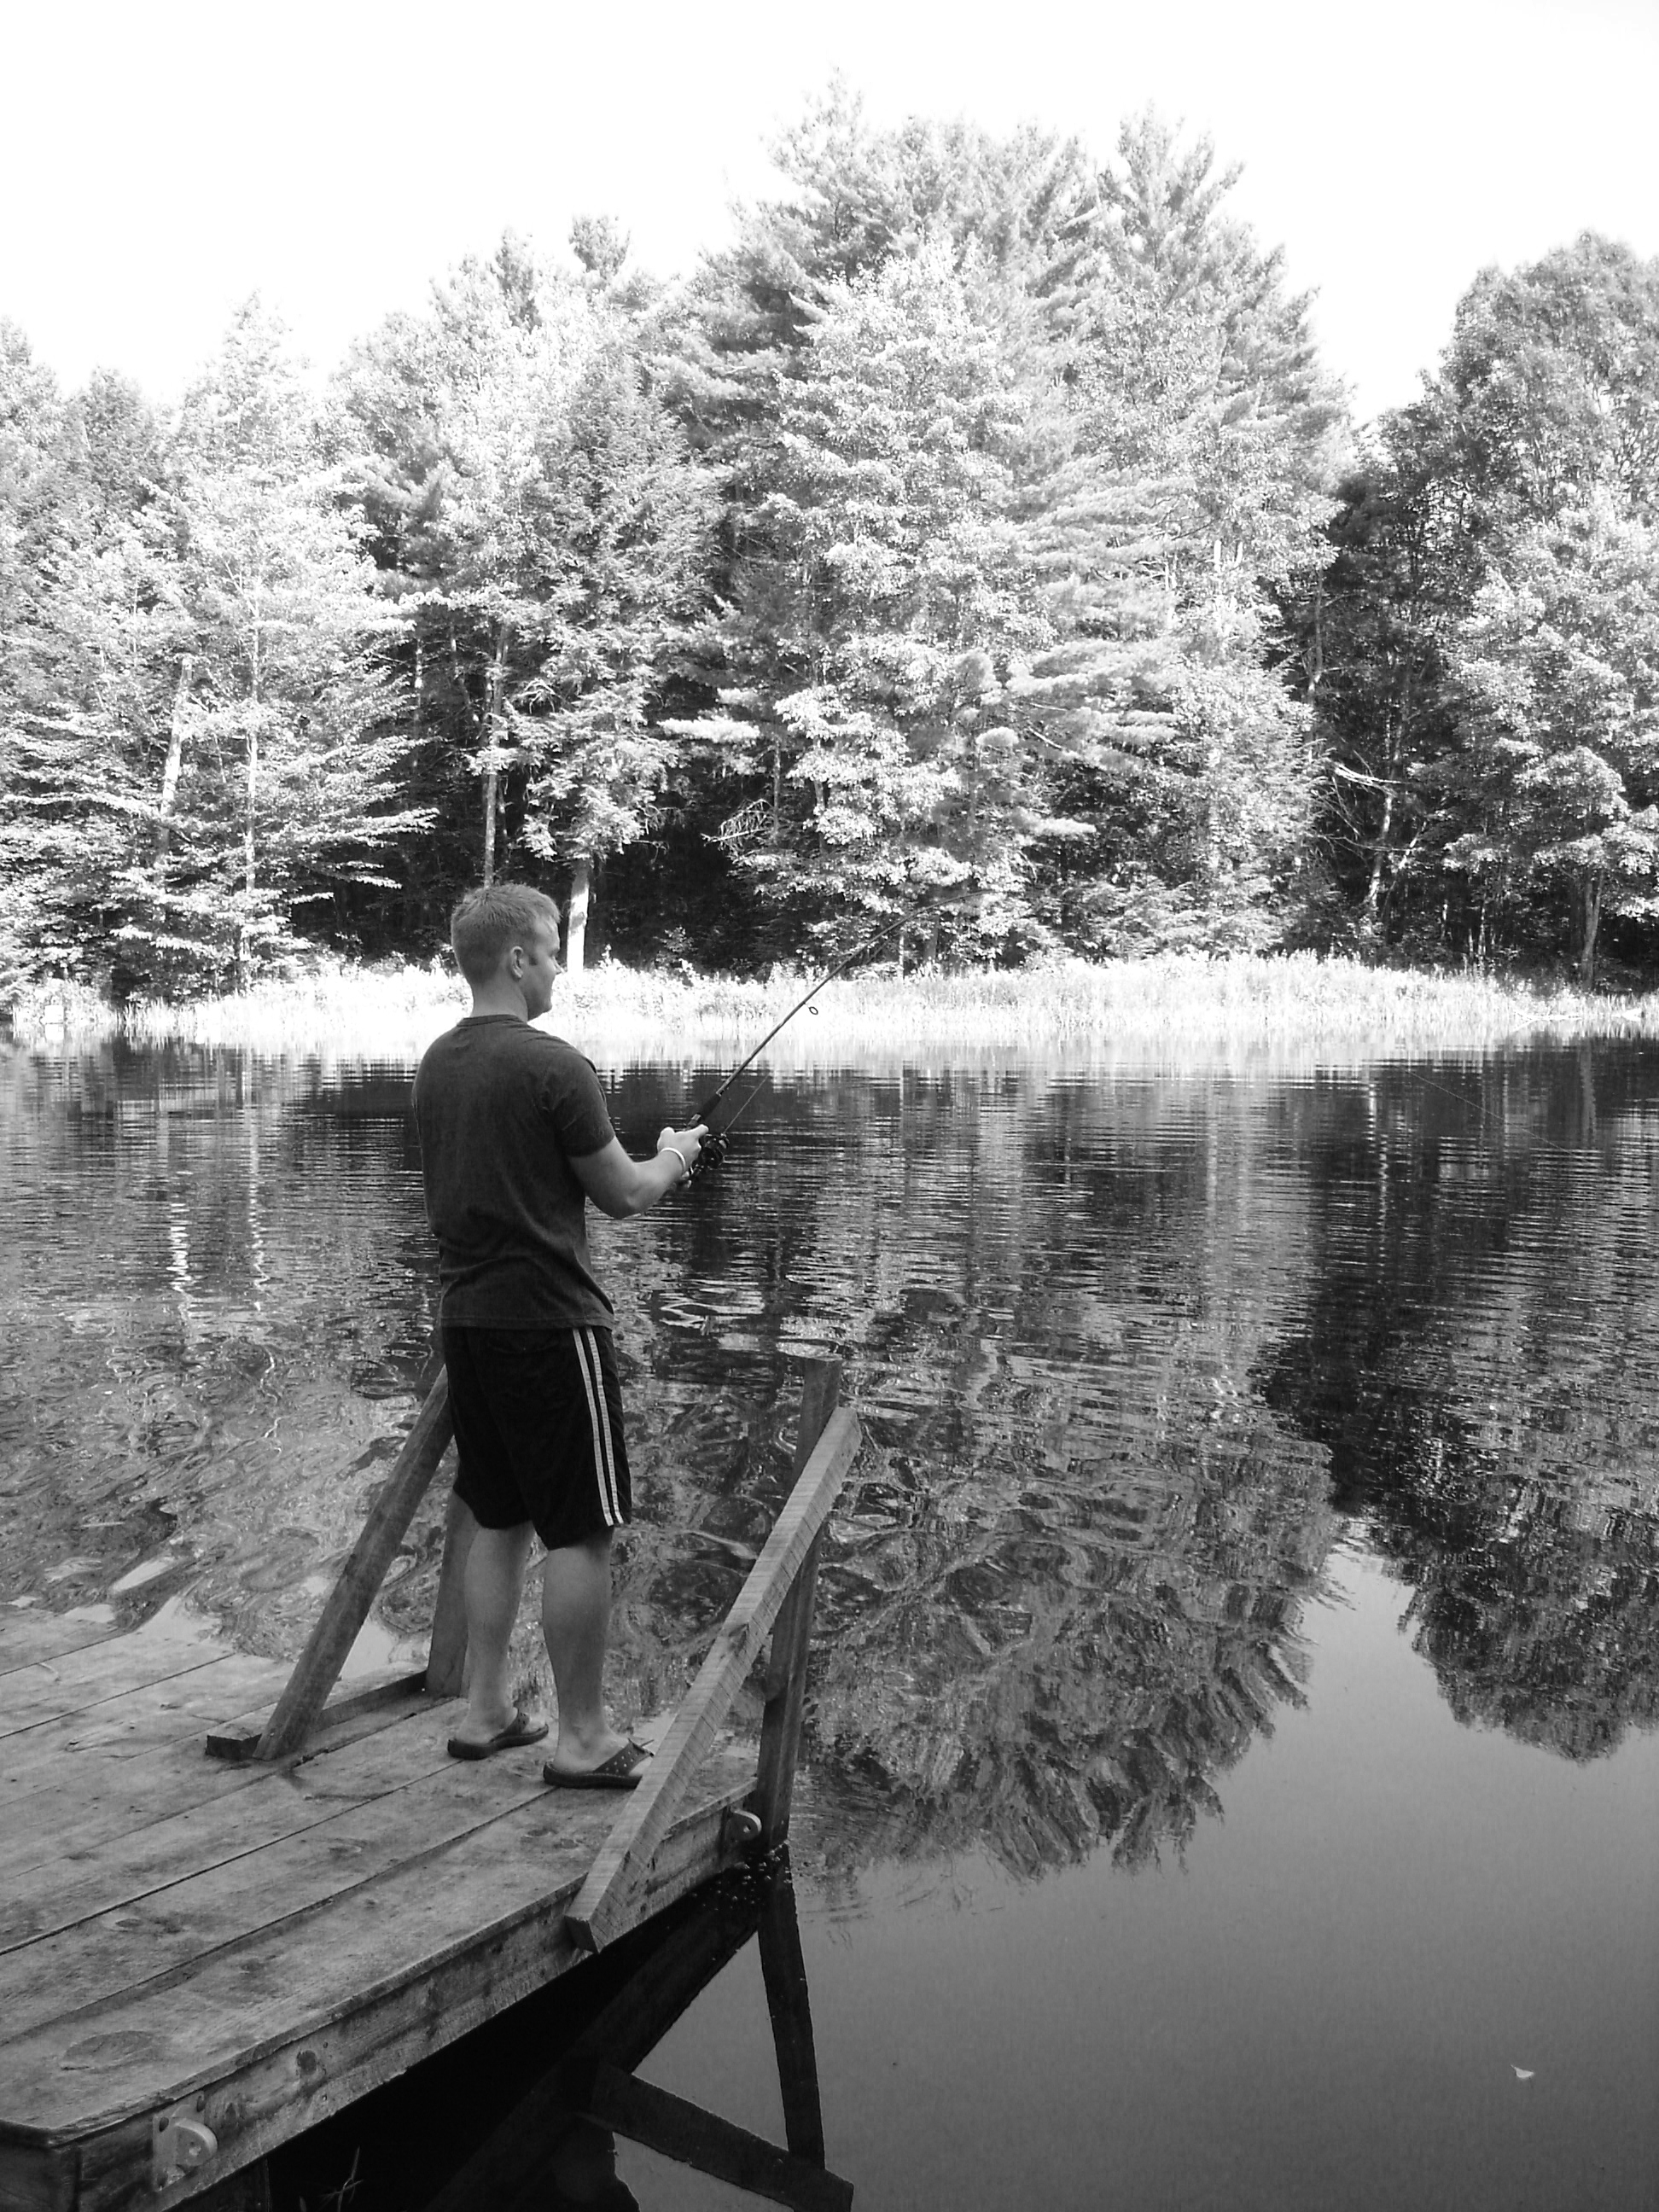 Private land does not require a license to fish.